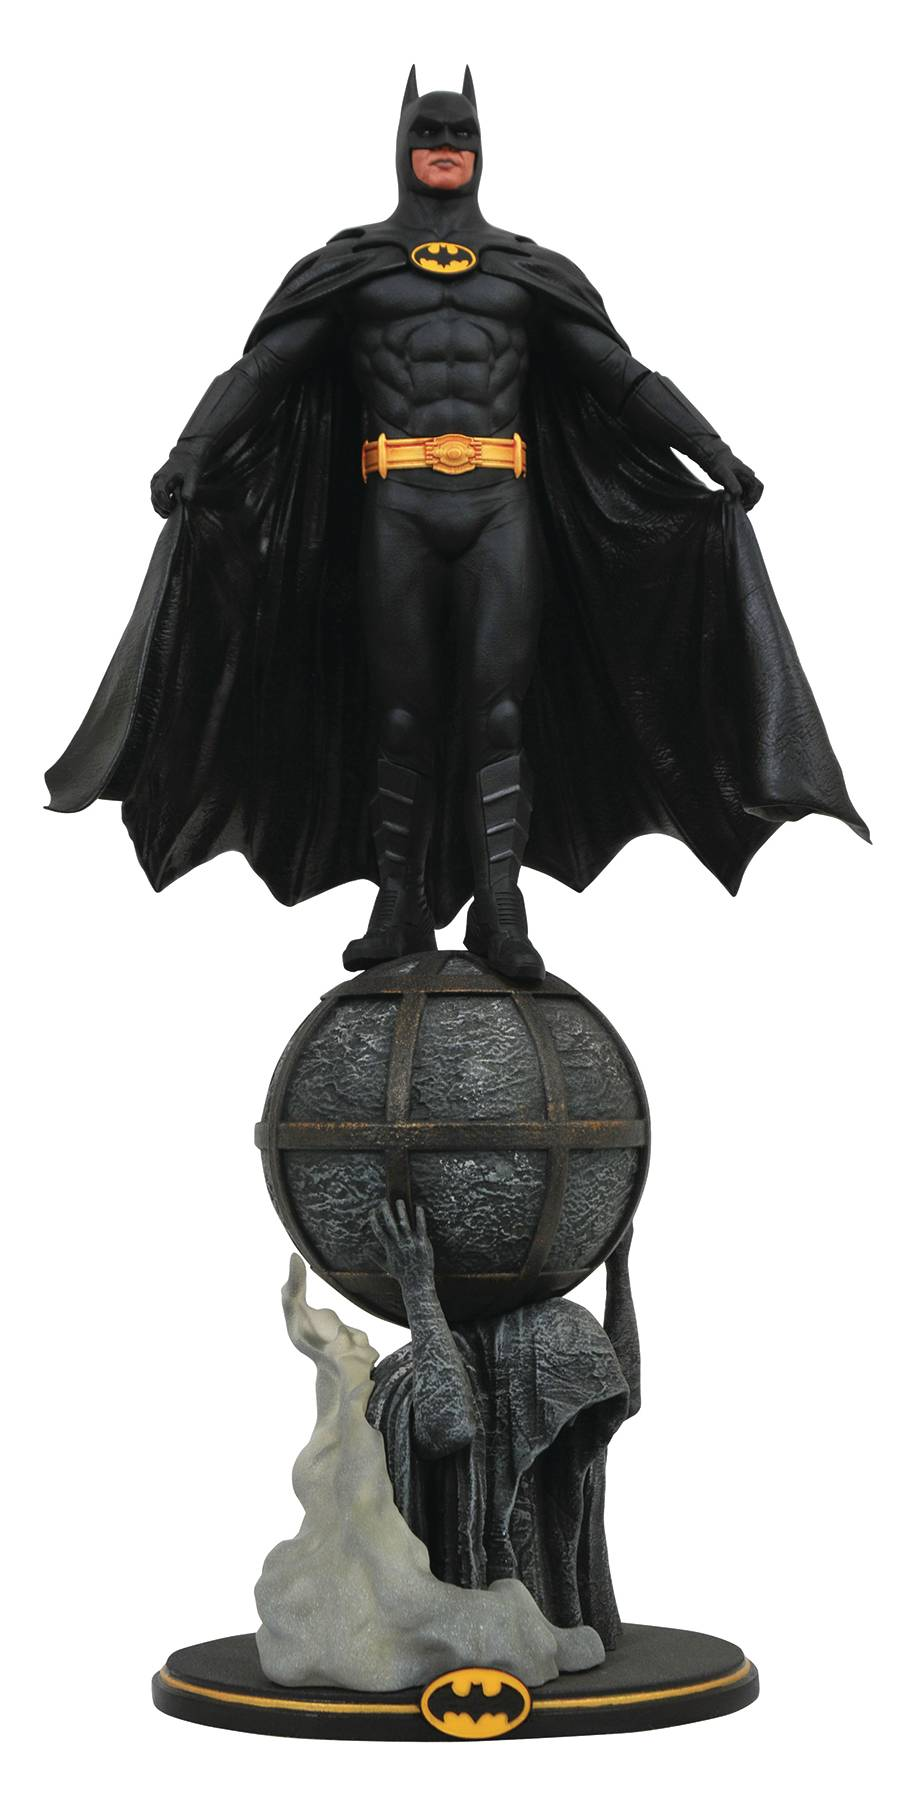 Diamond DC Comics Gallery Batman 1989 Movie Statue